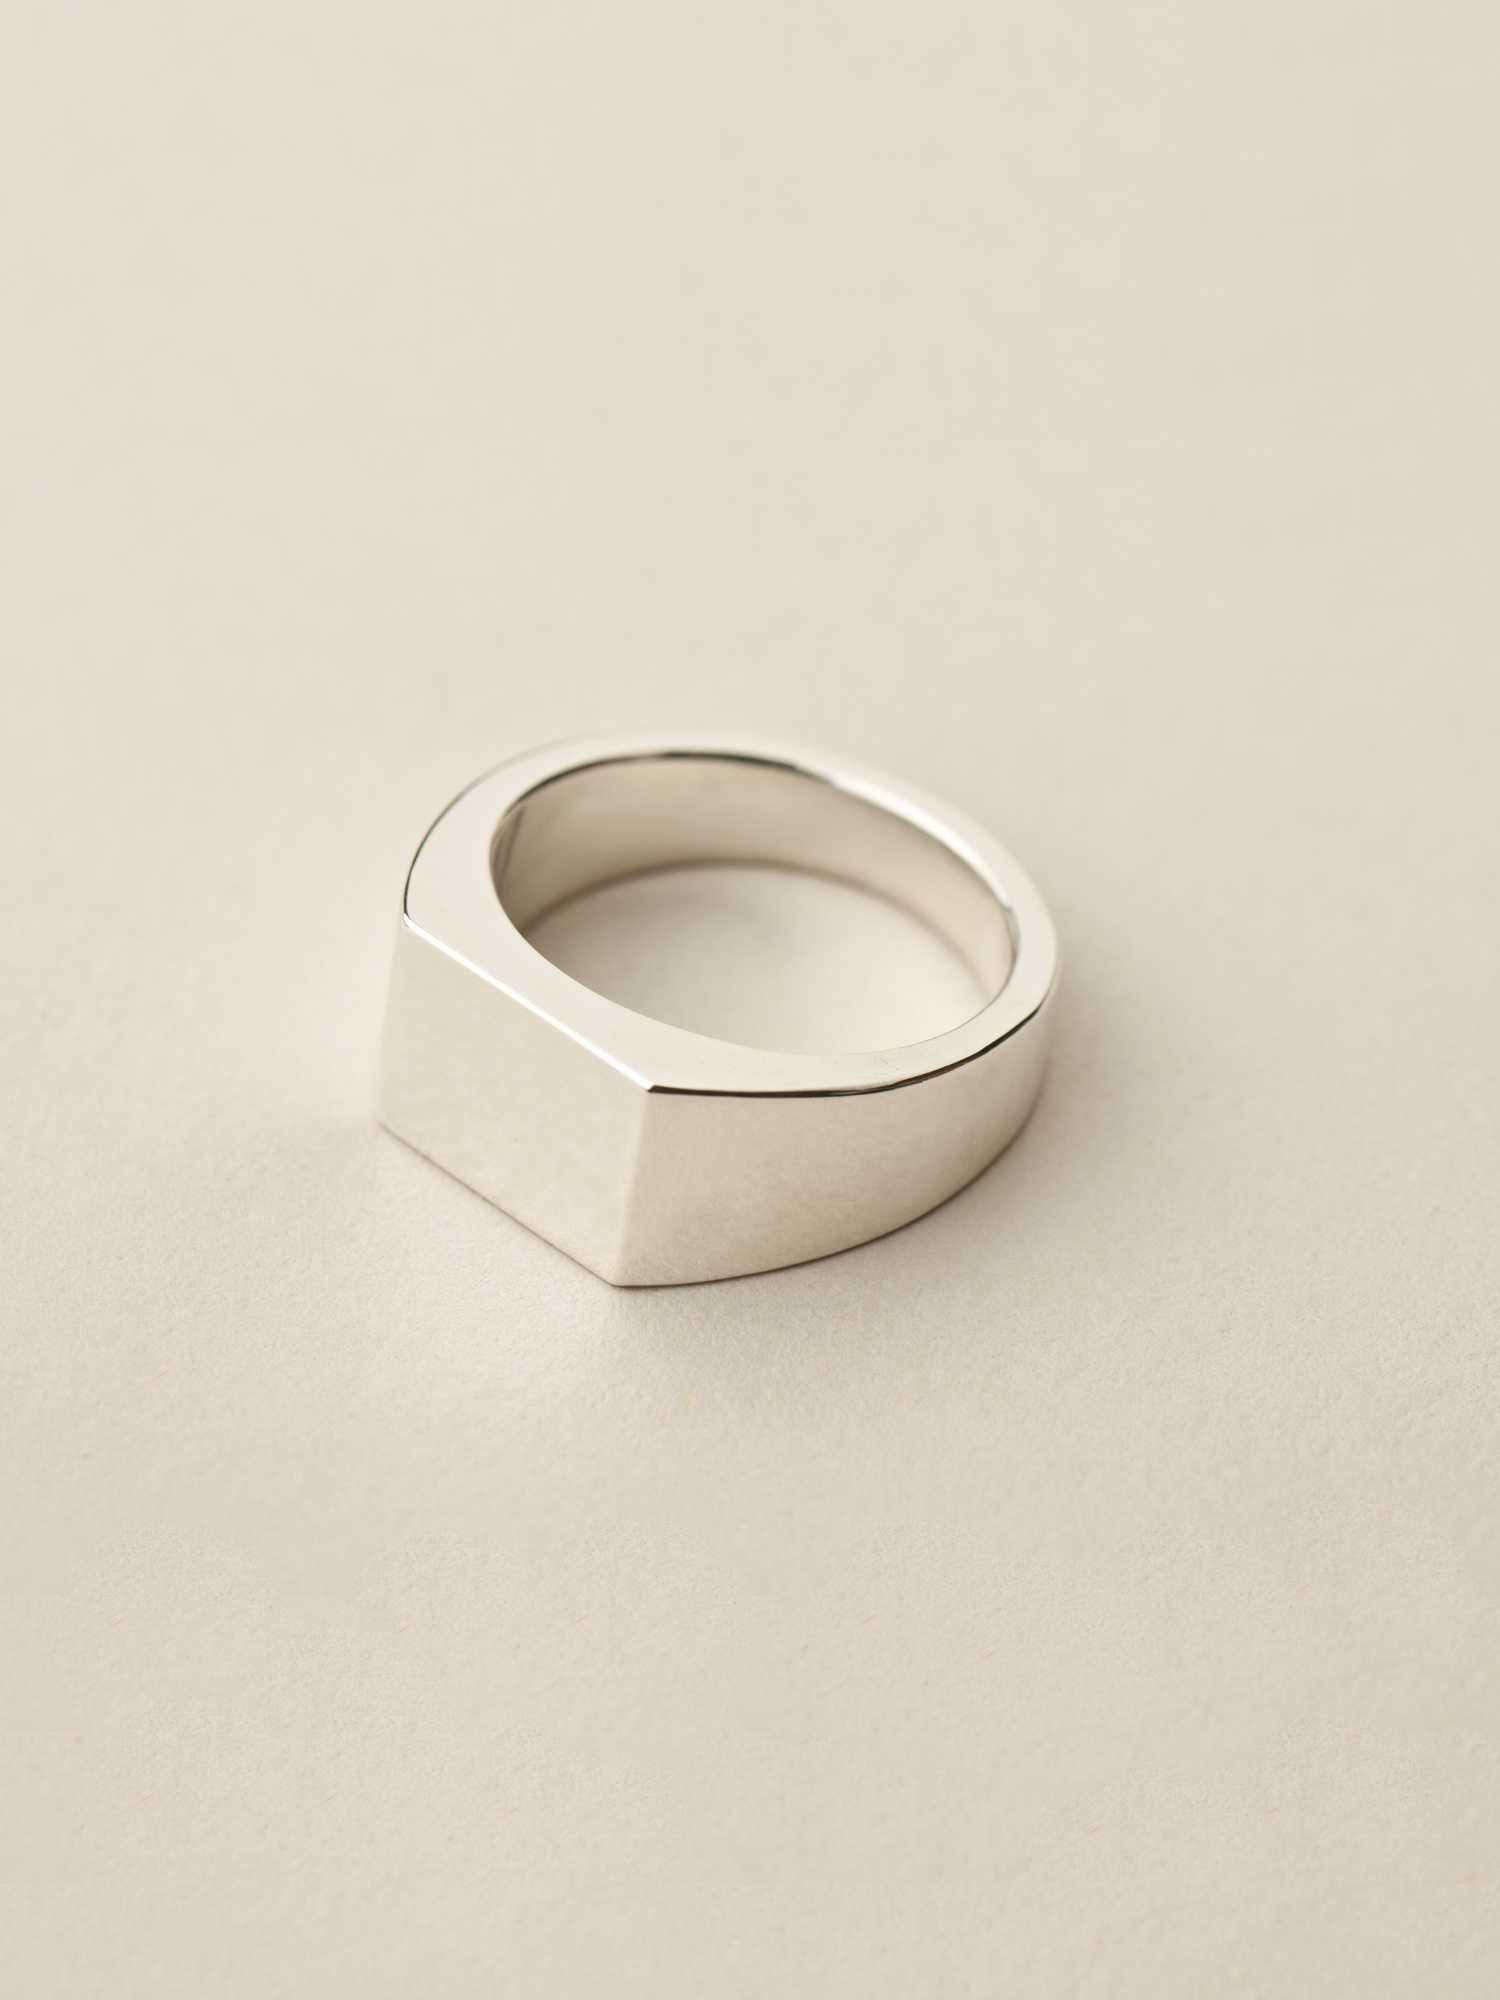 Siegelring Minima, groß rechteckig in 925 Silber  Signet ring Minima, big rectangle in sterling silver